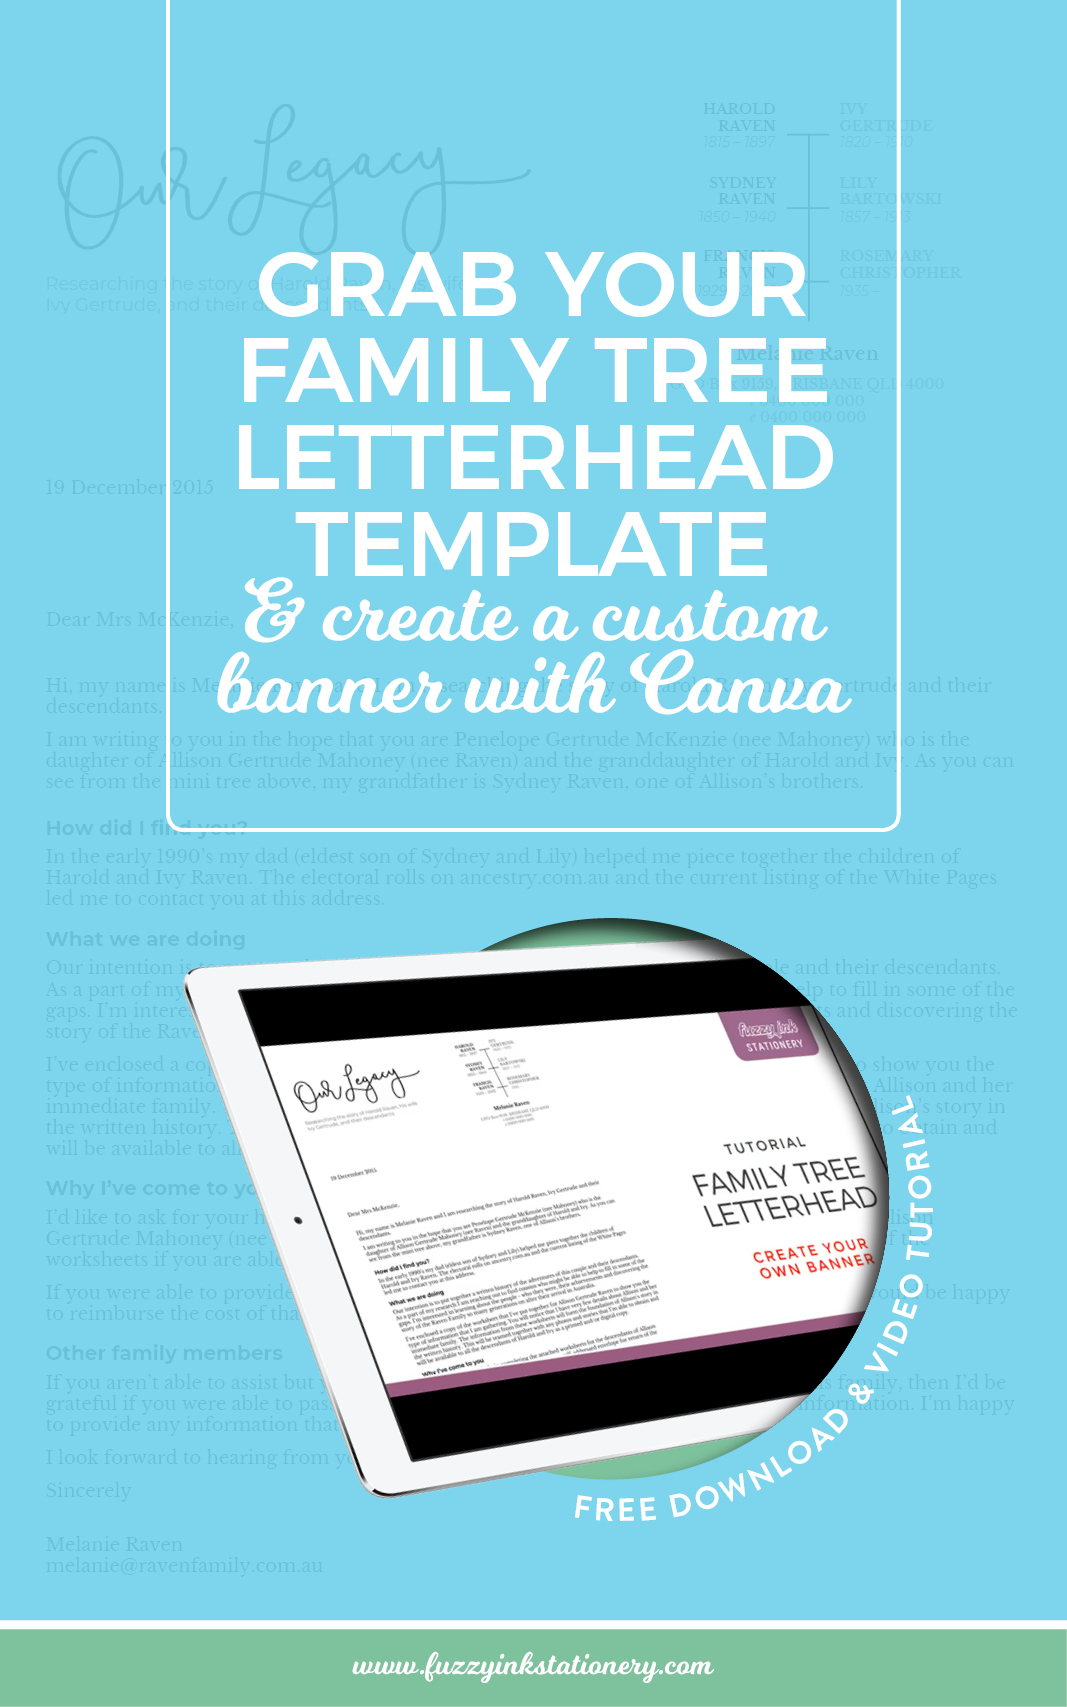 Grab Fuzzy Ink Stationery's Family Tree Letterhead template for Google Docs and correspond with relatives to complete your genealogy research. Perfect for family history researchers and everyone building their family tree.